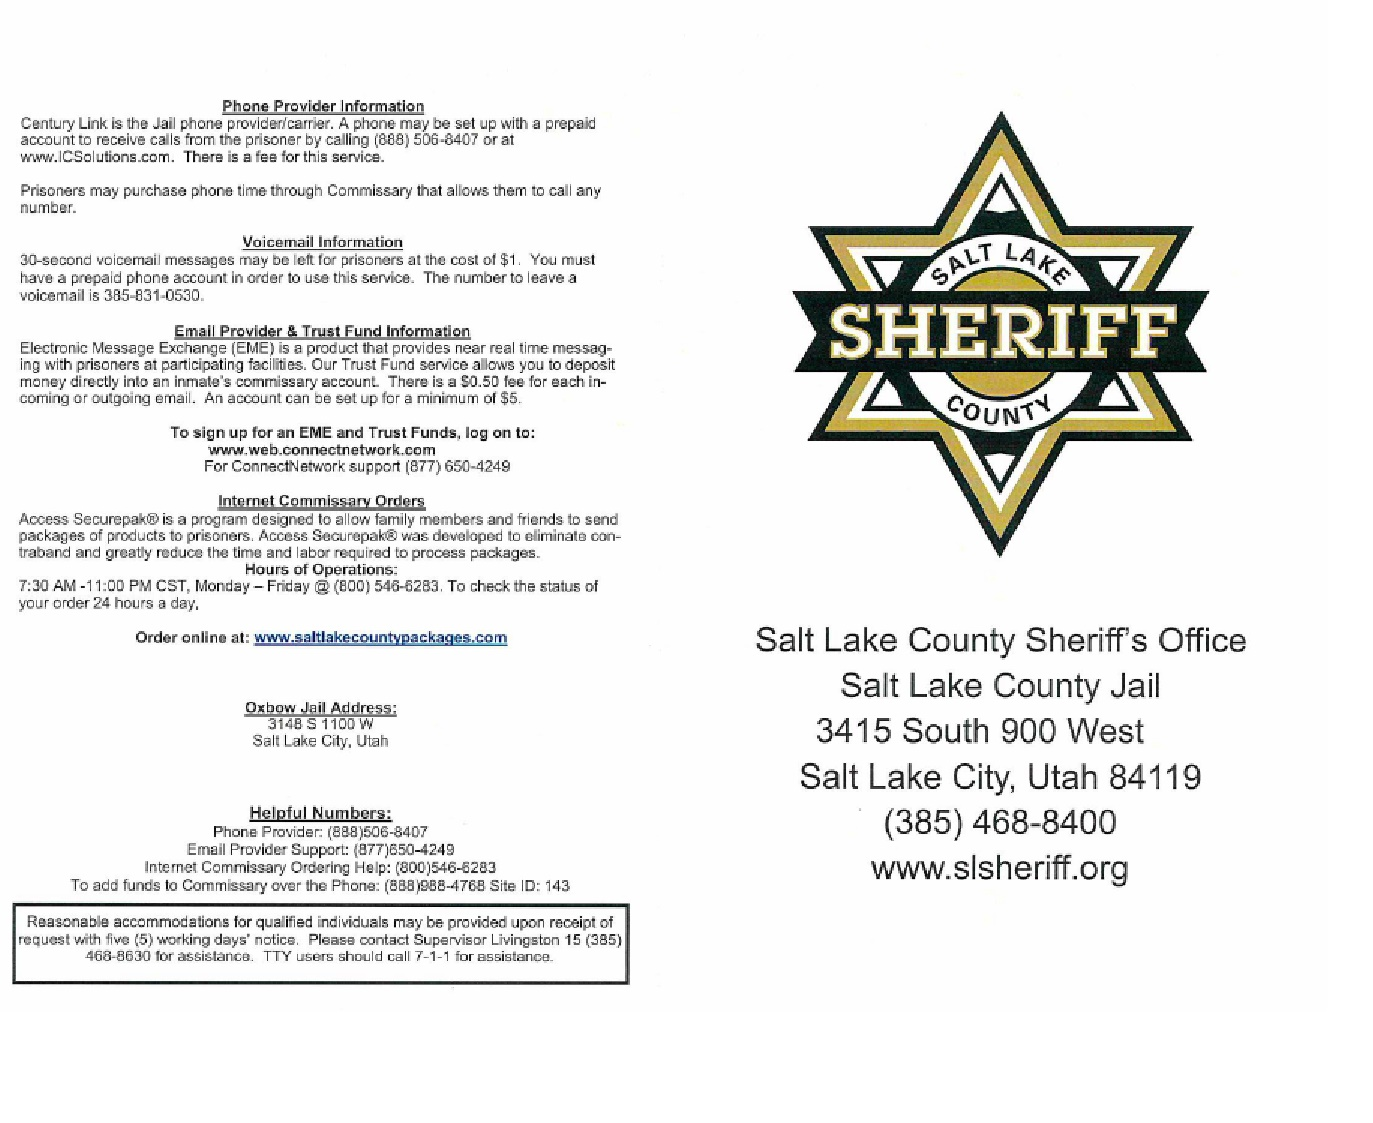 slsheriff Information about the Salt Lake County Jail